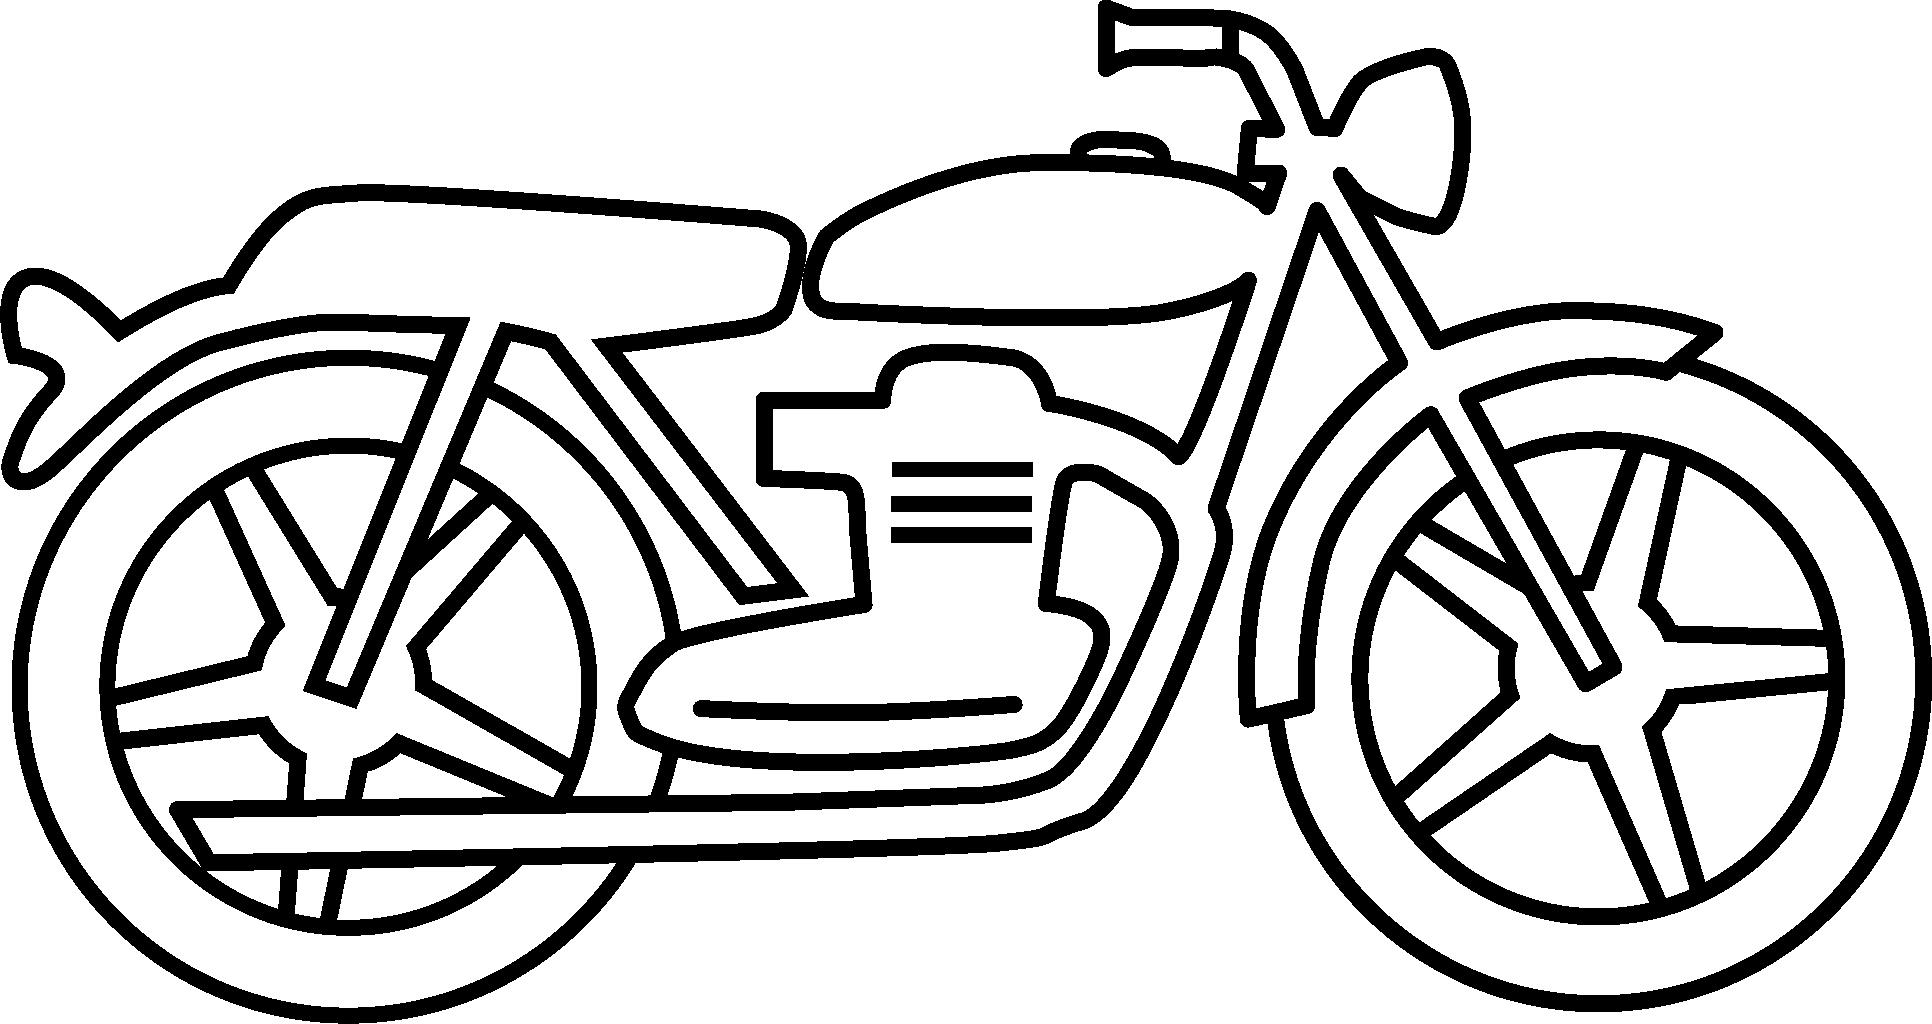 Motorcycle clipart. Fresh black and white